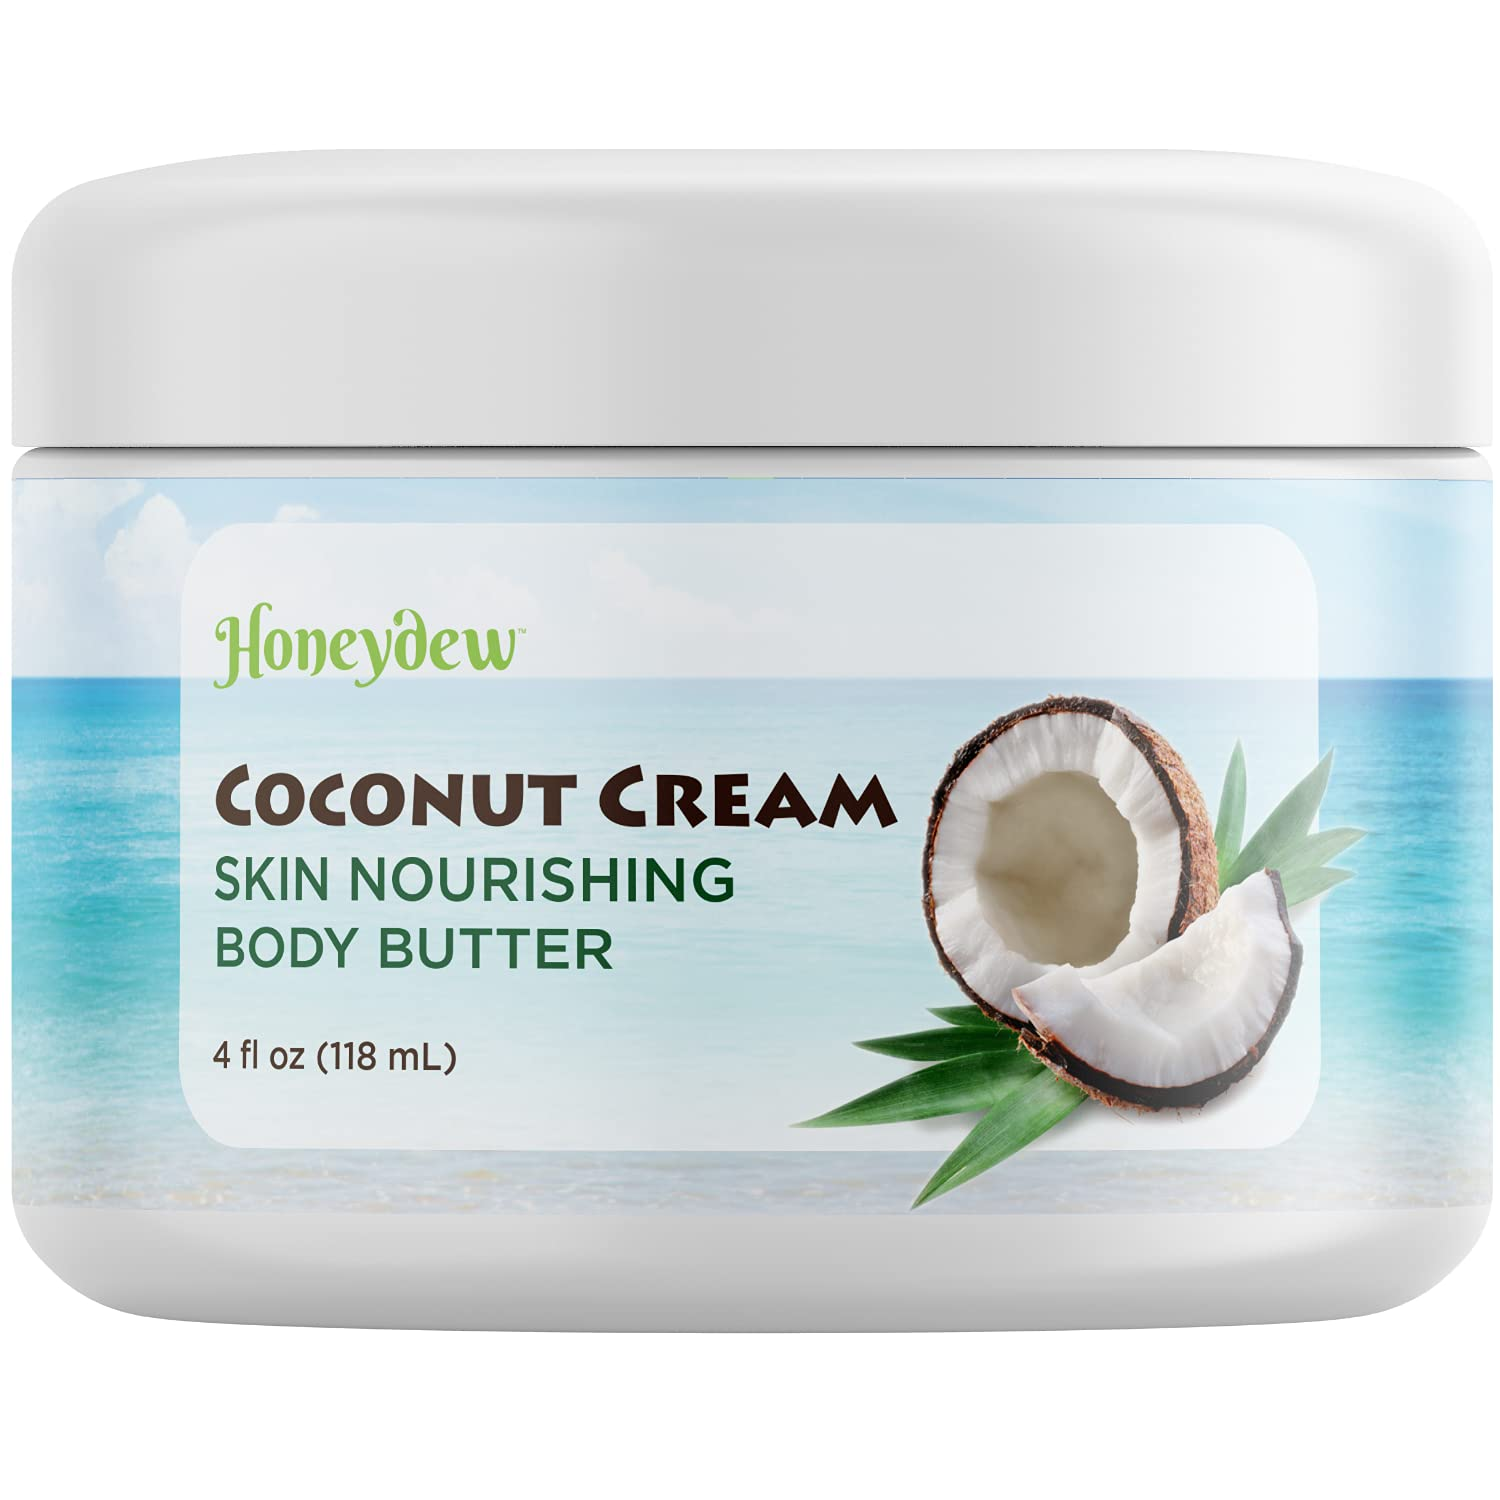 Coconut Oil Moisturizing Body Butter - Body Cream for Stretch Marks Scar Cream and Anti Aging Cream for Men and Women with Rosehip and Jojoba Oil - Hydrating Anti Aging Moisturizer for Dry Skin Care